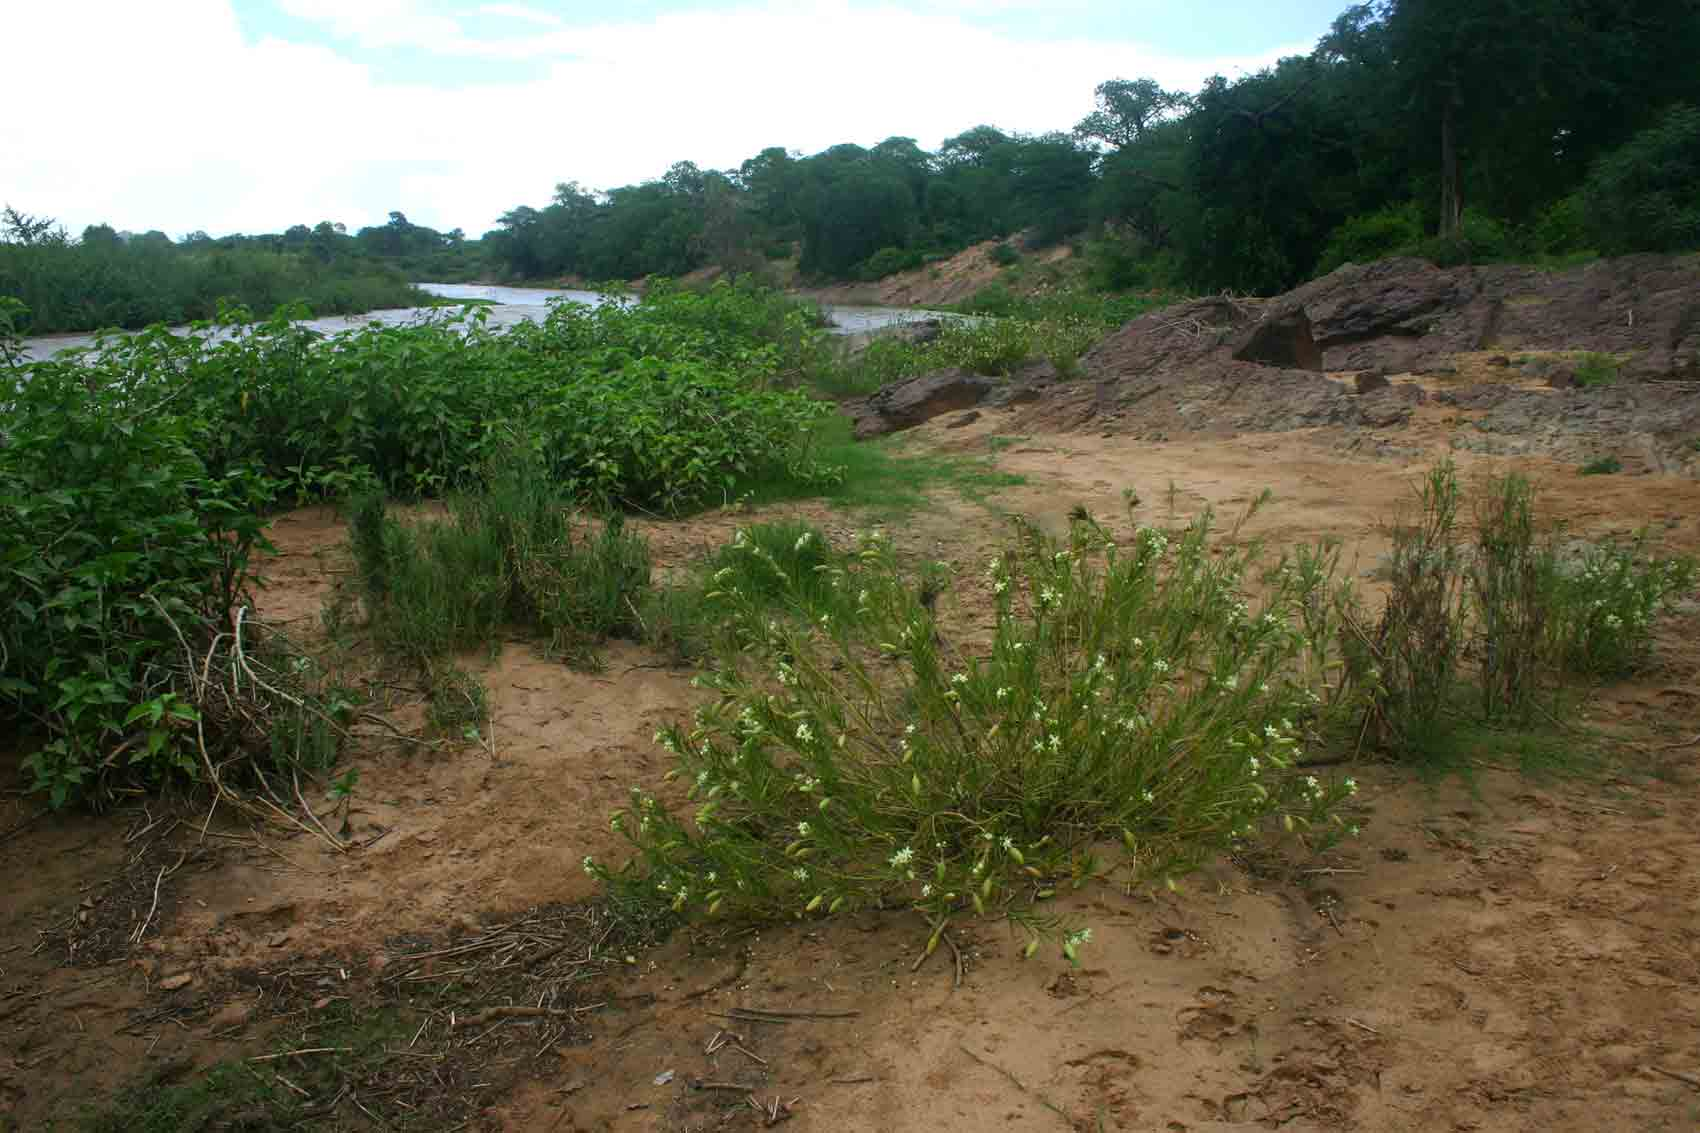 Another view of the Odzi River. Kanahia laniflora in the foreground.